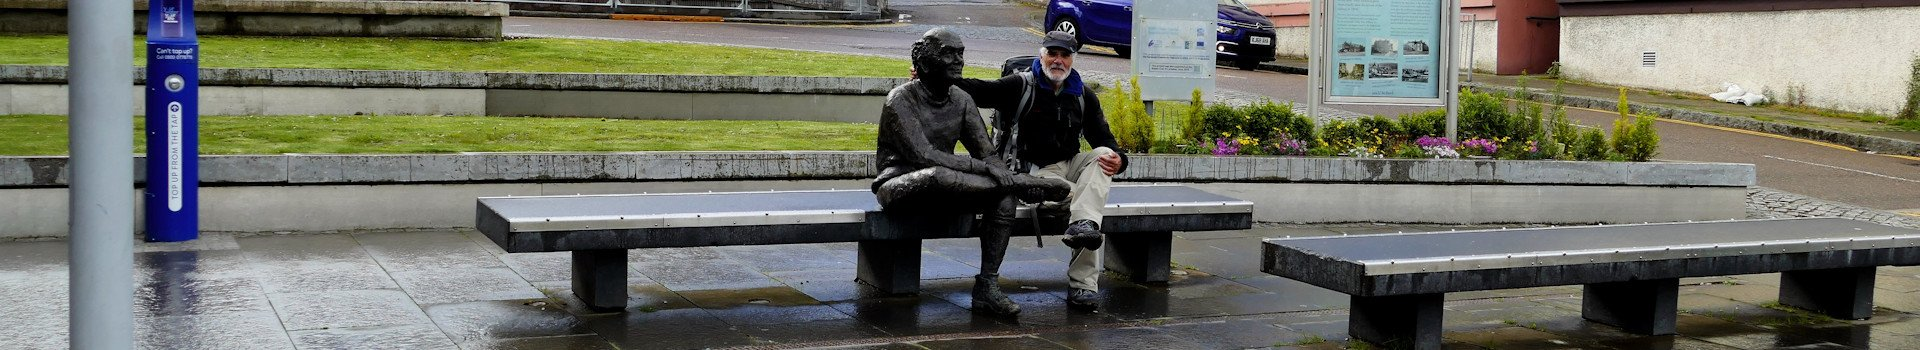 West Highland Way – Etappe 13